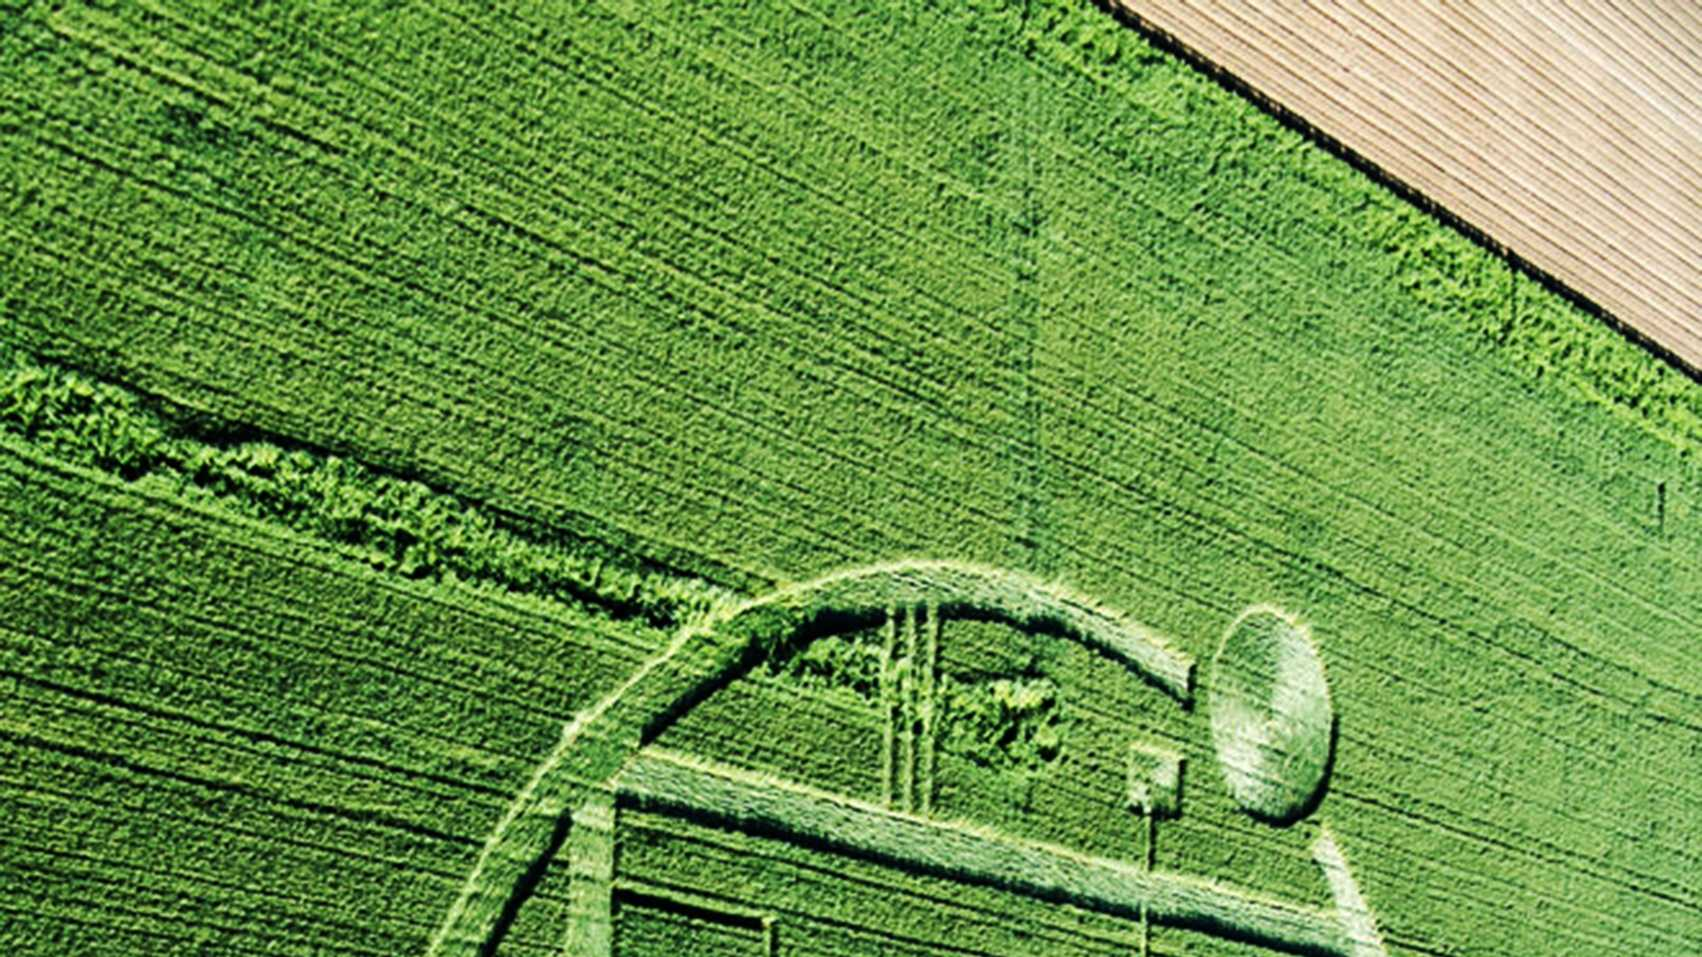 This image of the Chualar crop circle has been rotated 90 degrees to show a braille inscription at the correct position.